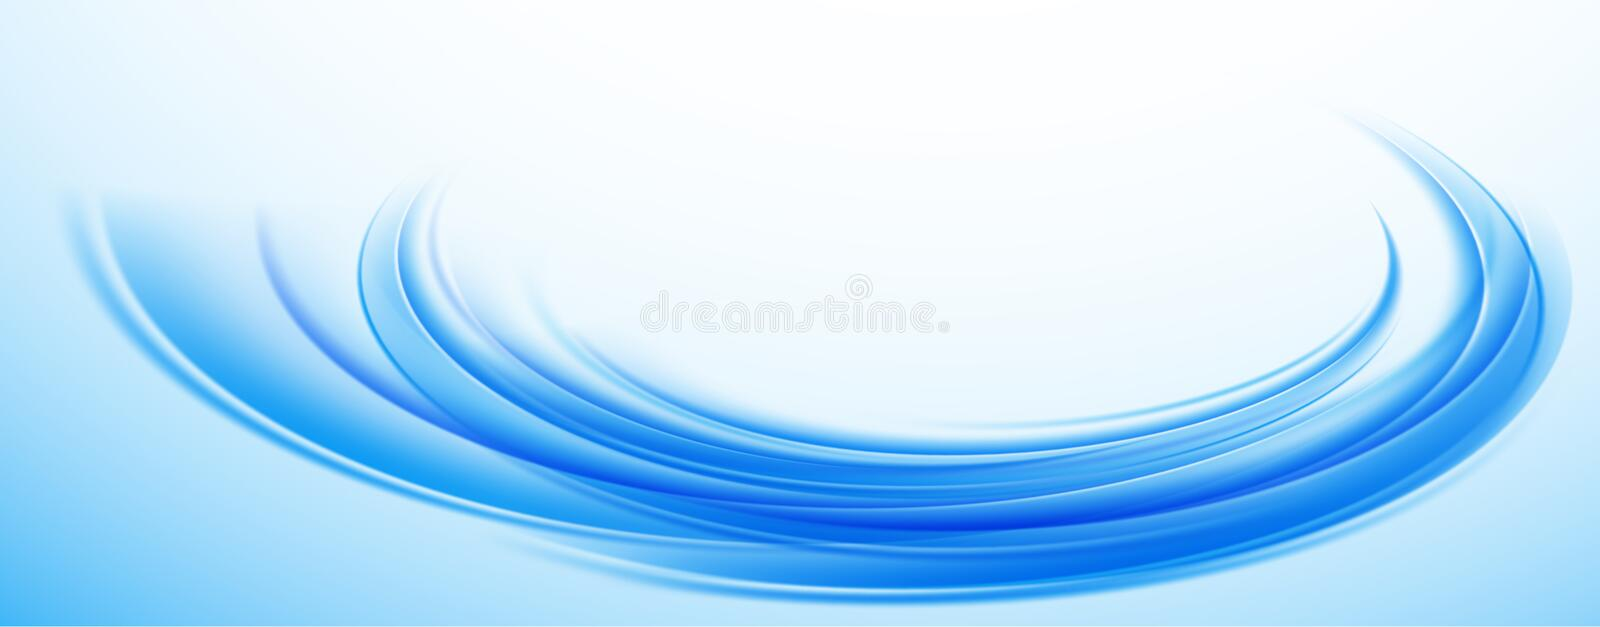 Abstract blue background water ripple. Colorful blue background. vector illustration design. royalty free illustration